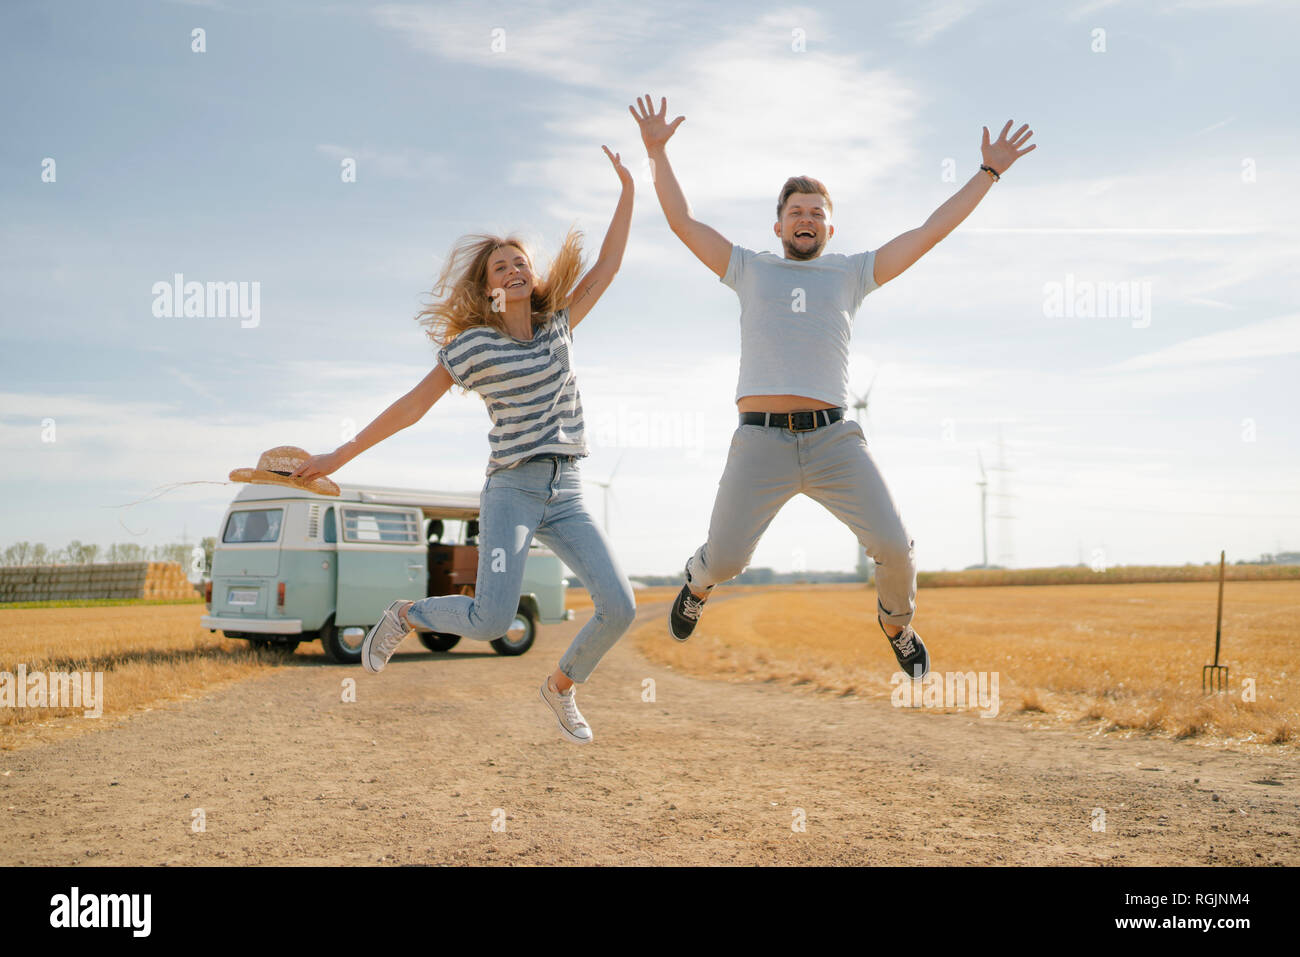 Exuberant couple jumping on dirt track at camper van in rural landscape Stock Photo